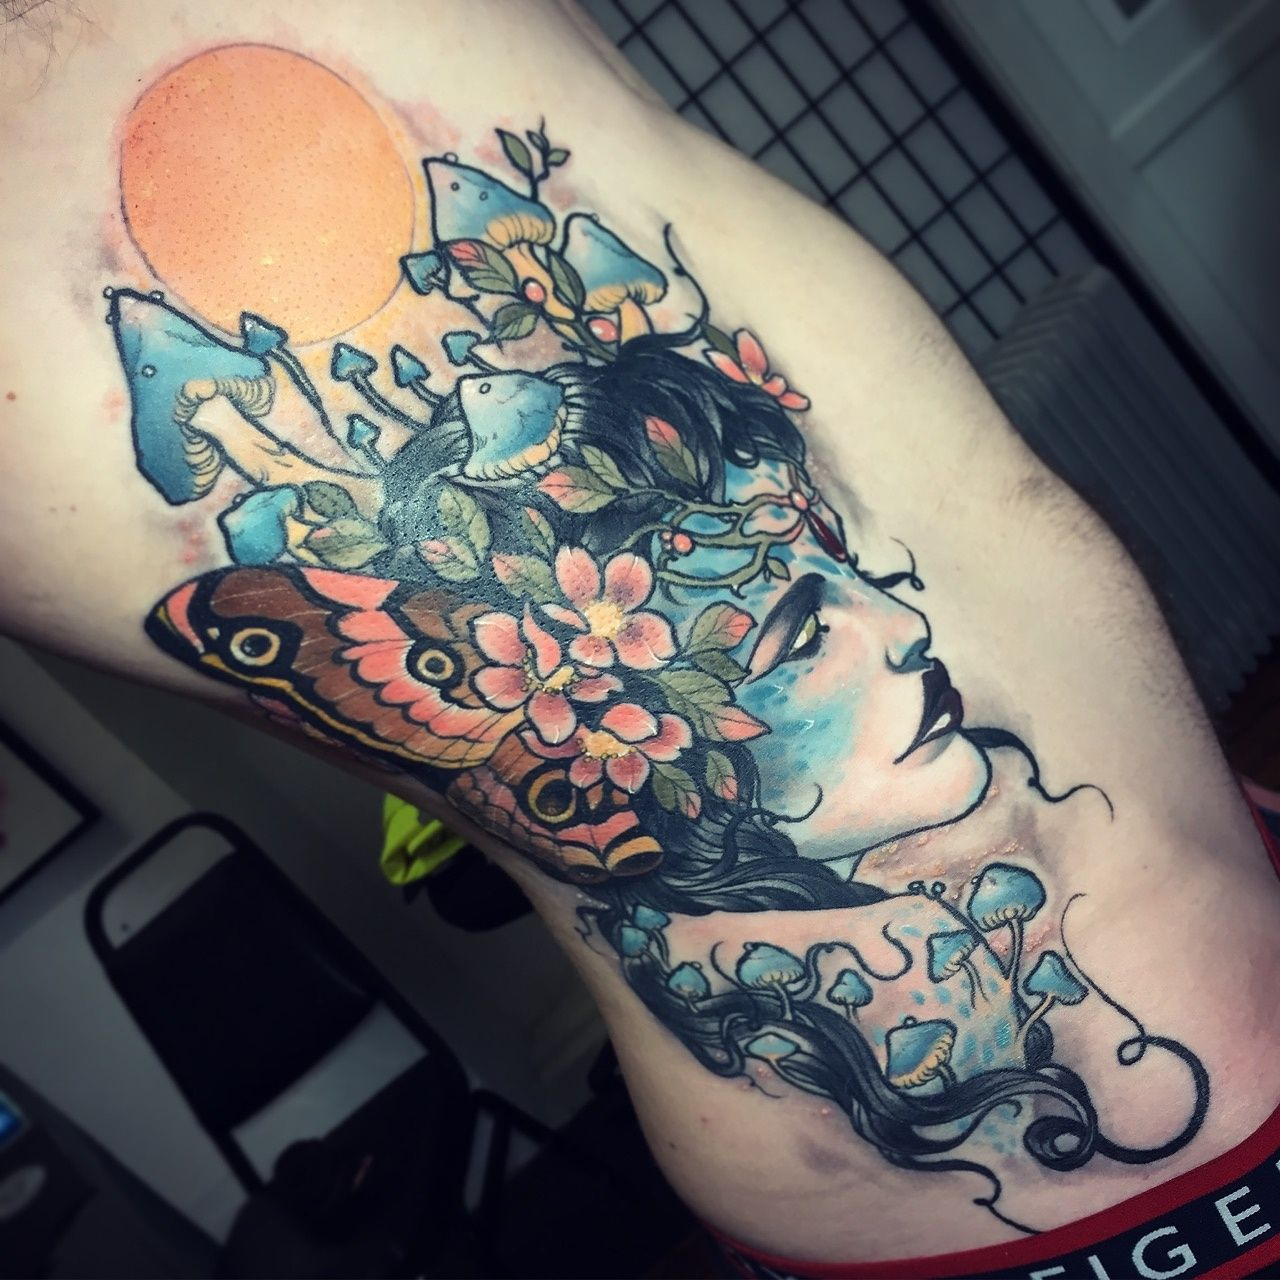 Mother Nature By Dean Kalcoff, At Dark Cloud Electric, In